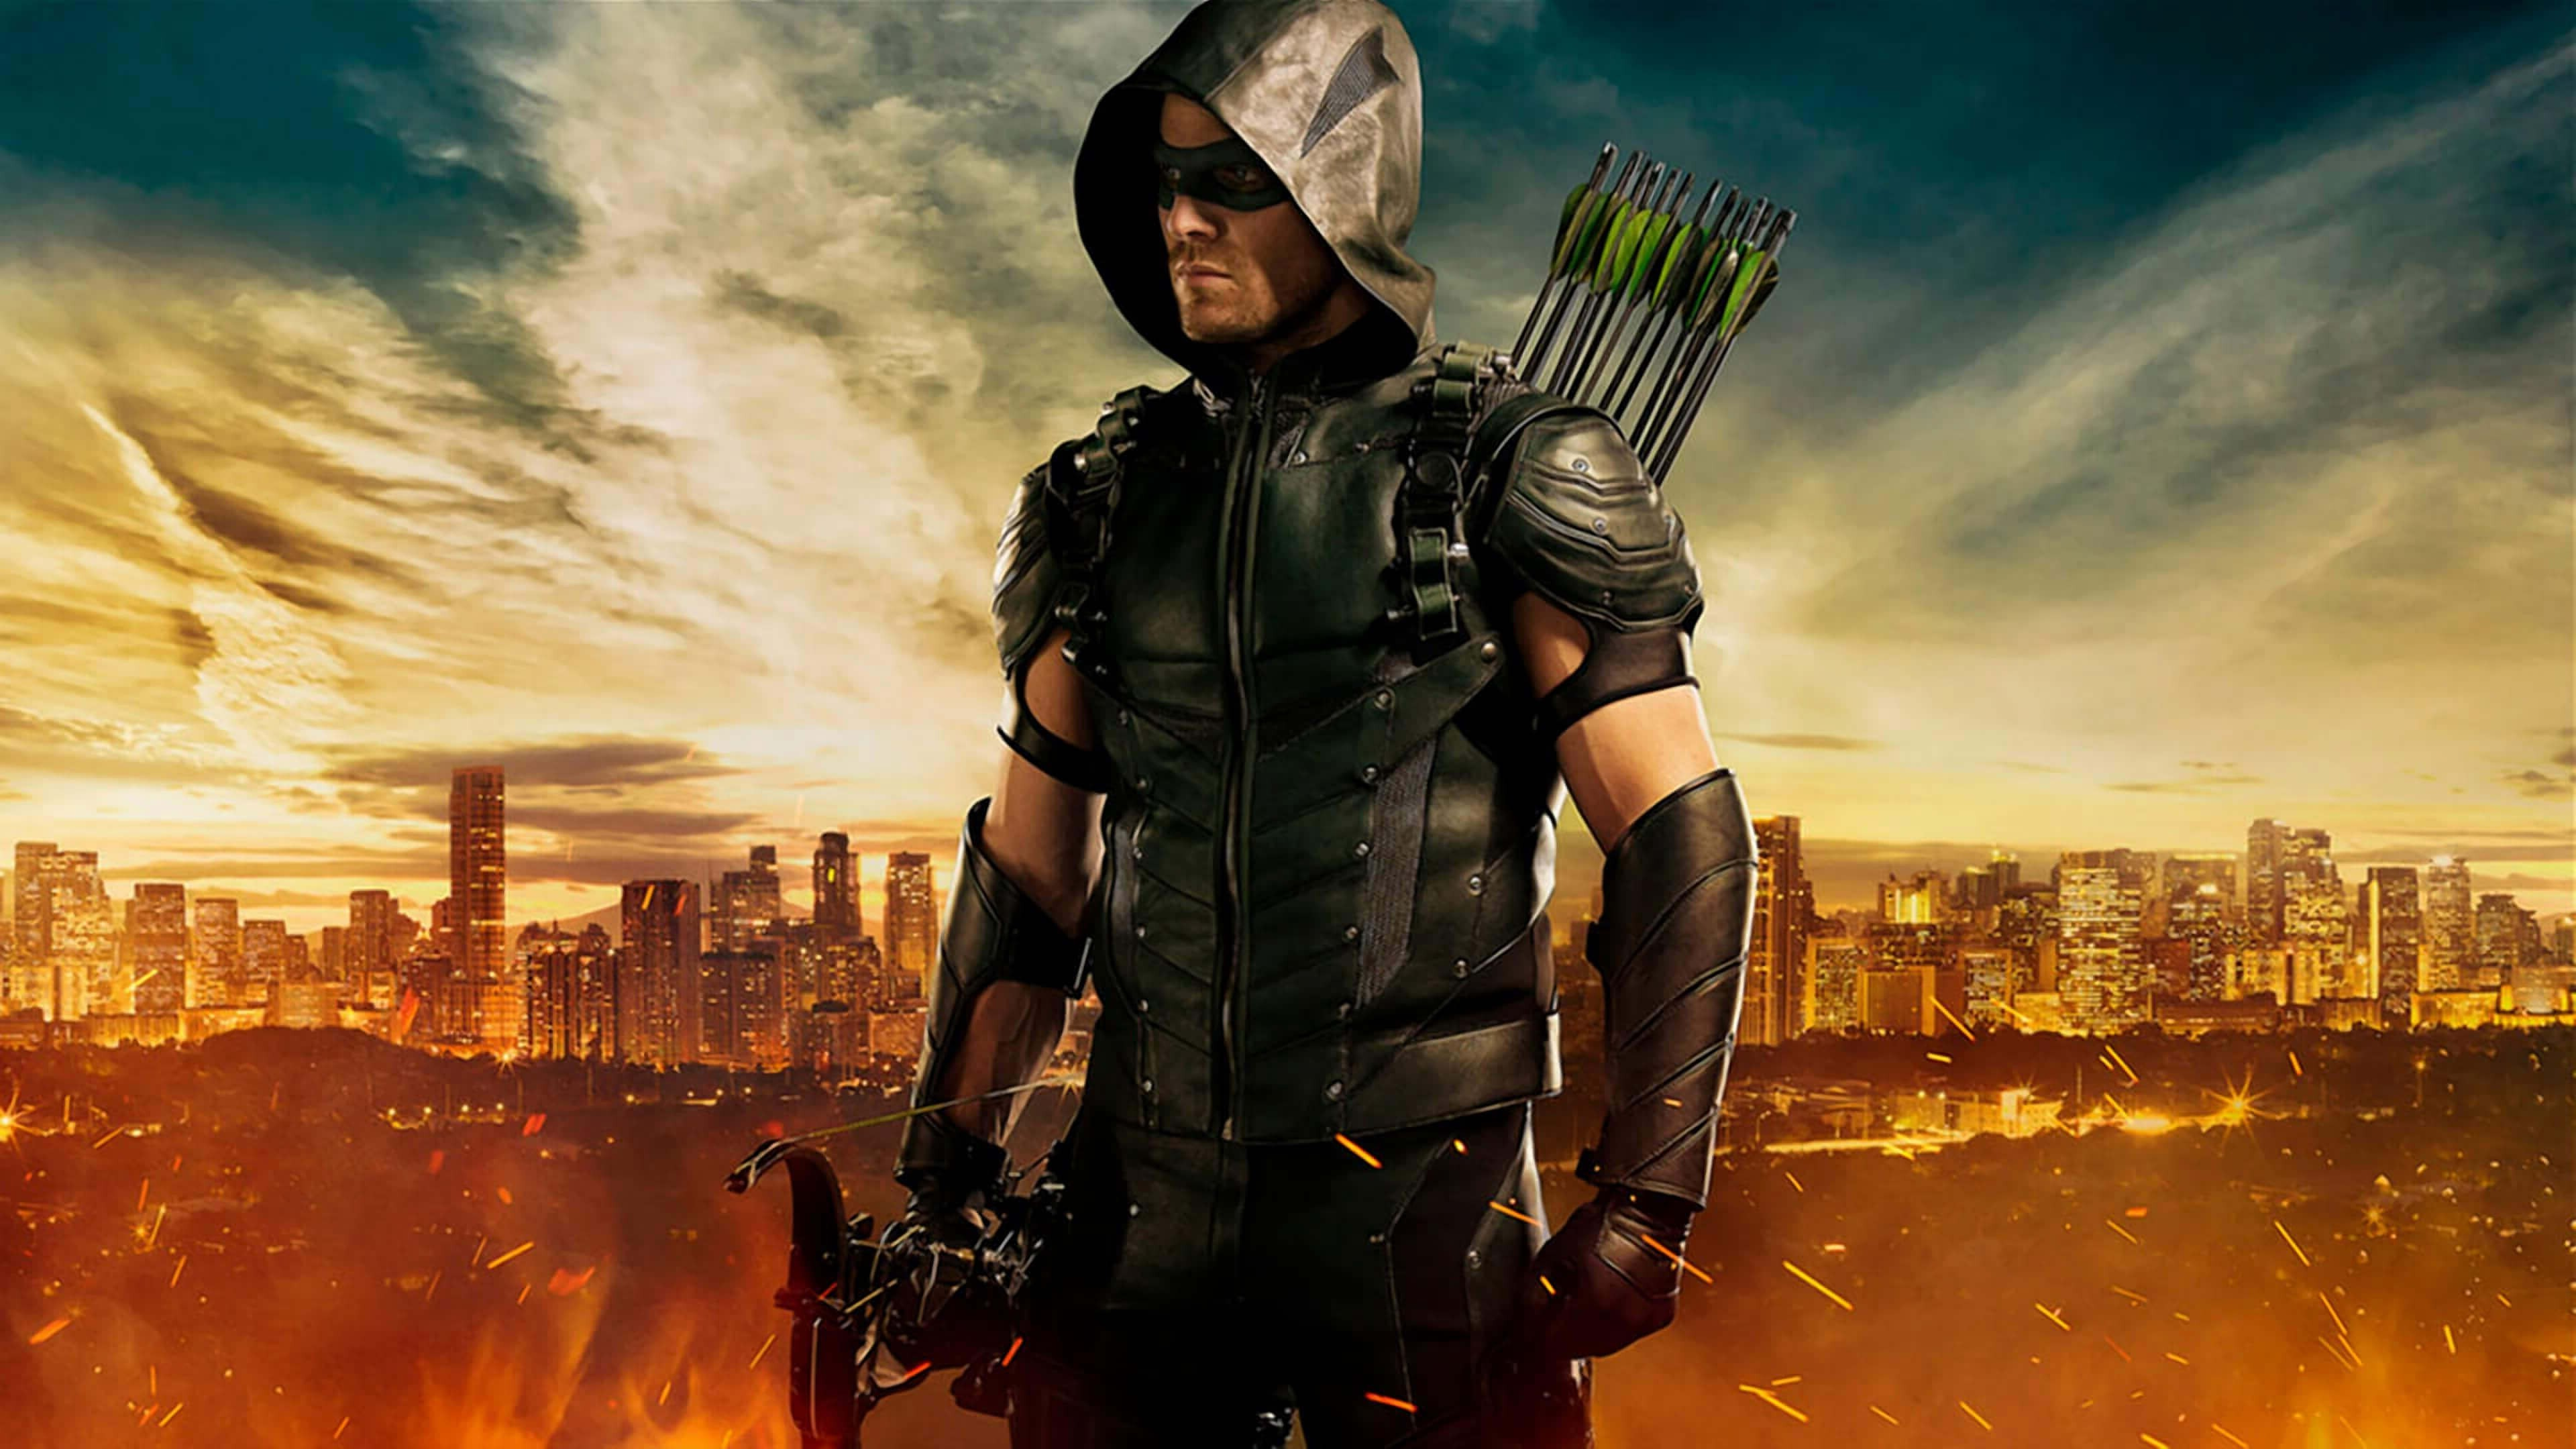 arrow hd tv shows 4k wallpapers images backgrounds